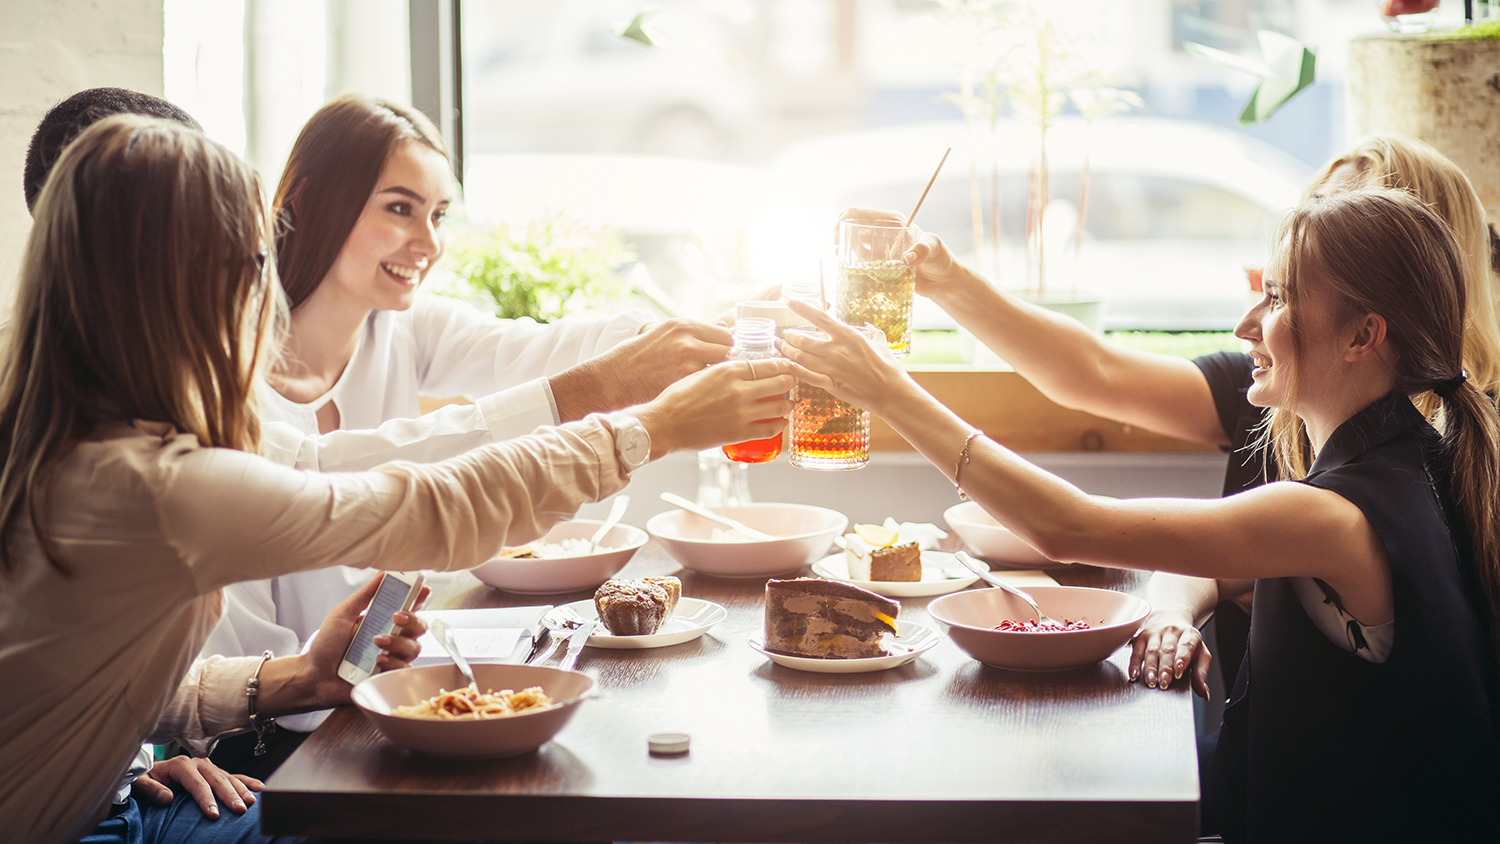 Use email marketing to give guests great deals to your restaurant